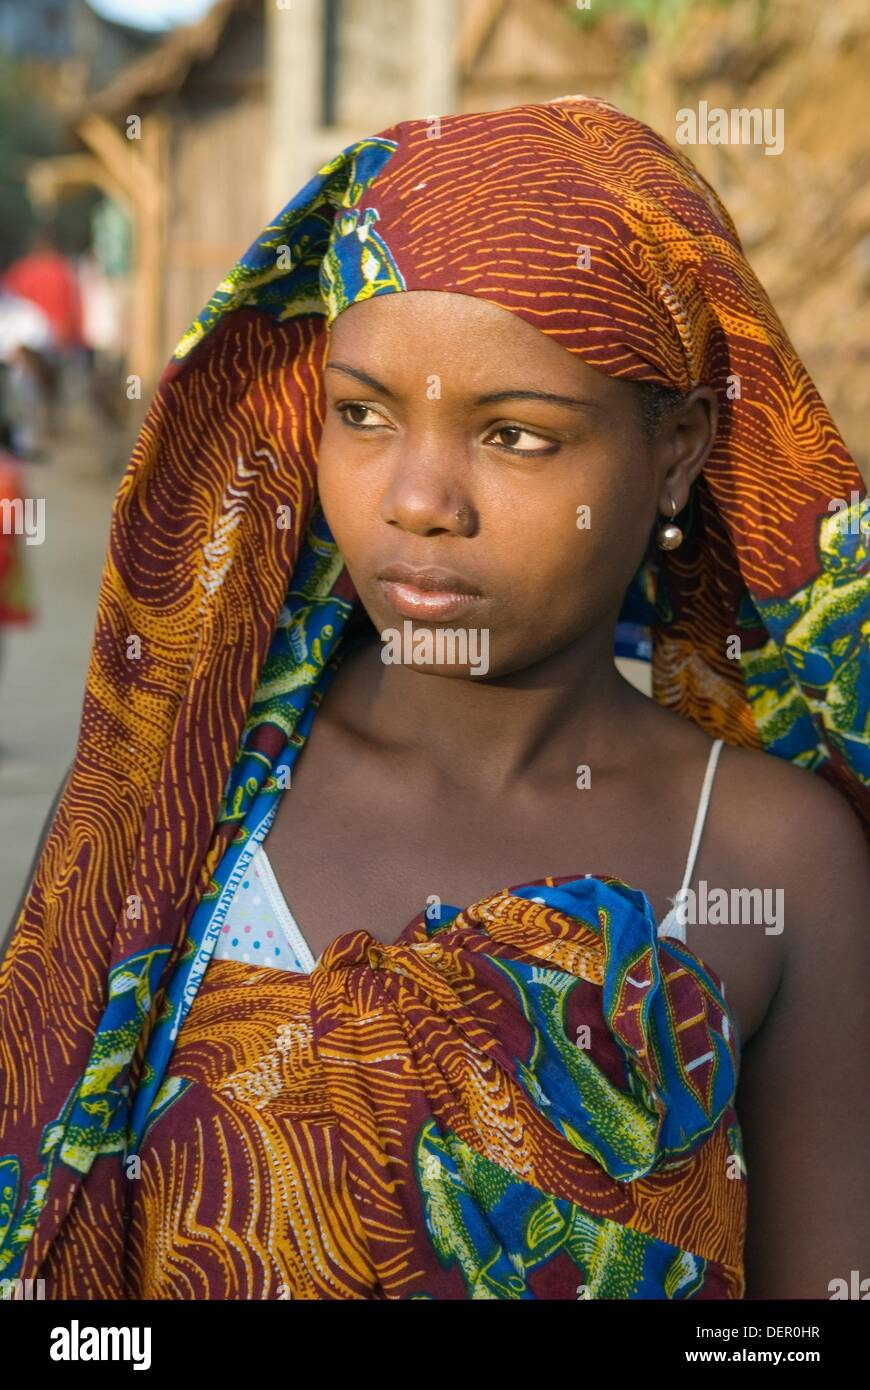 young malagasy woman, Hell-Ville Andoany, Nosy Be island, Republic of Madagascar, Indian Ocean - Stock Image